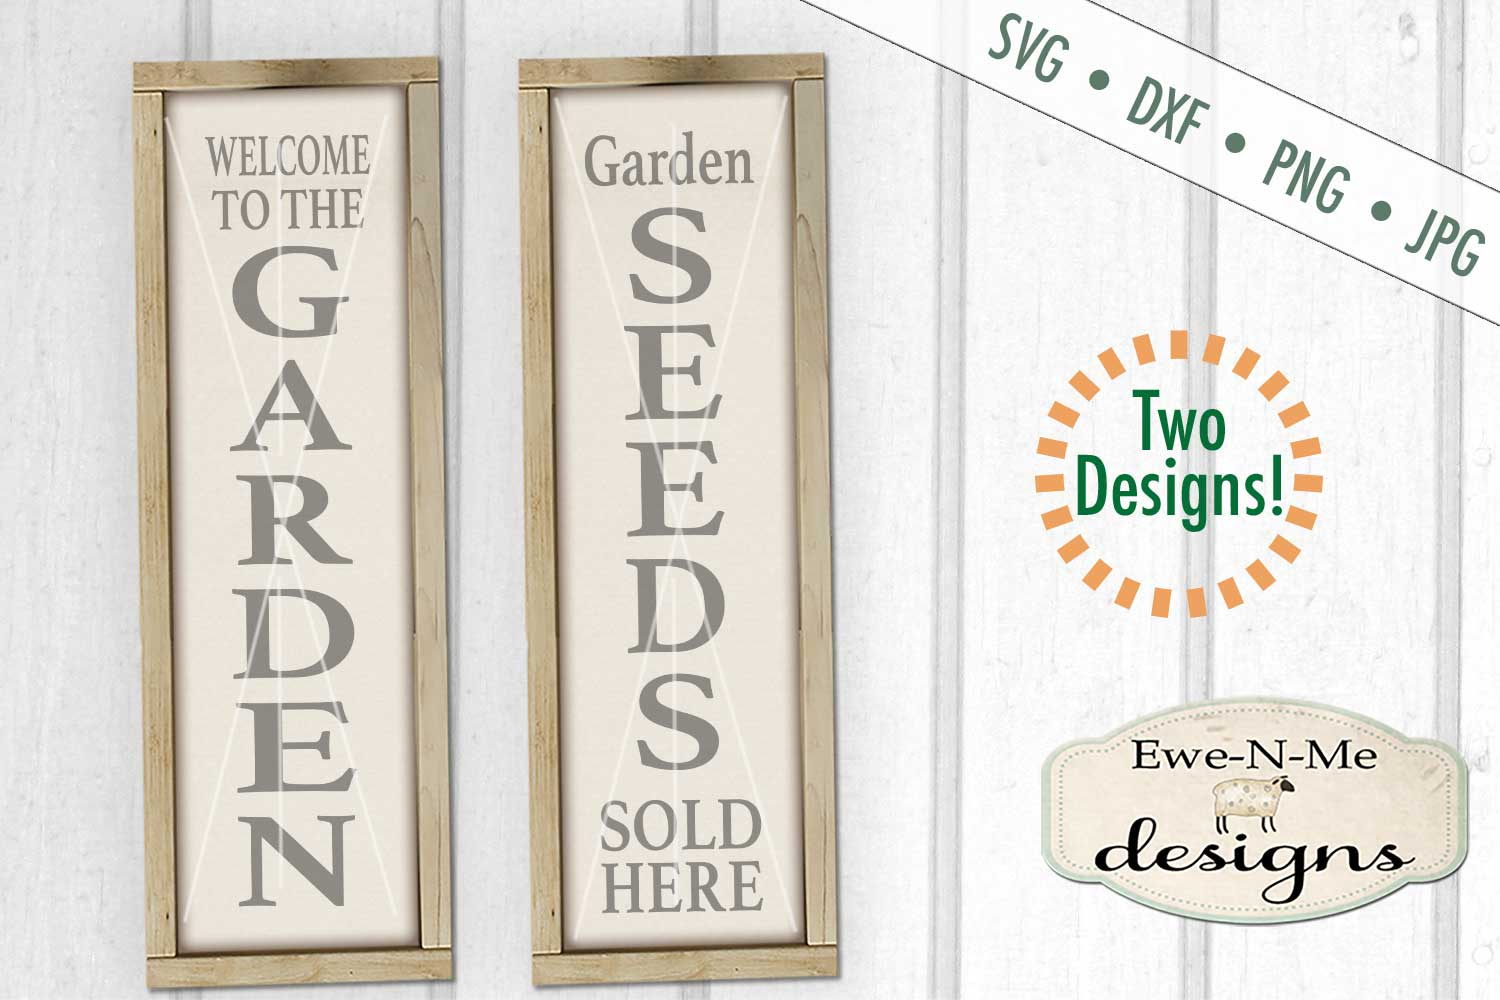 Garden Seeds Vertical Porch Sign SVG DXF Files example image 1